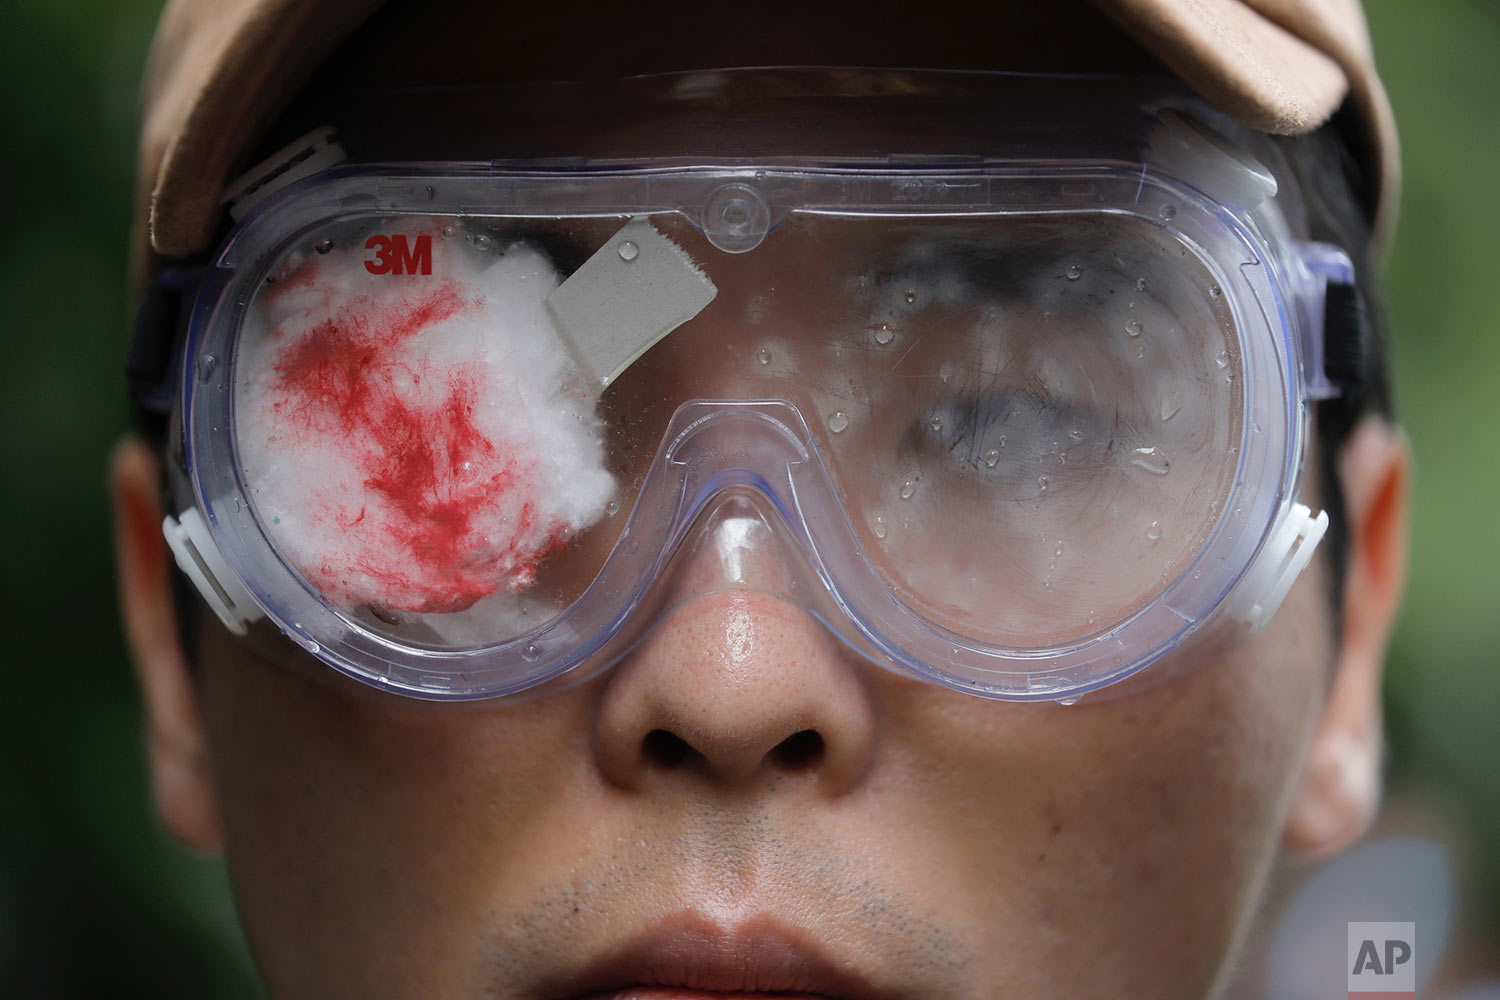 A pro-democracy protester with his eye covered in red-eyepatch, symbolizing a women reported to have had an eye ruptured by a beanbag round fired by police during clashes, participates in a march organized by teachers in Hong Kong Saturday, Aug. 17, 2019. (AP Photo/Vincent Yu)